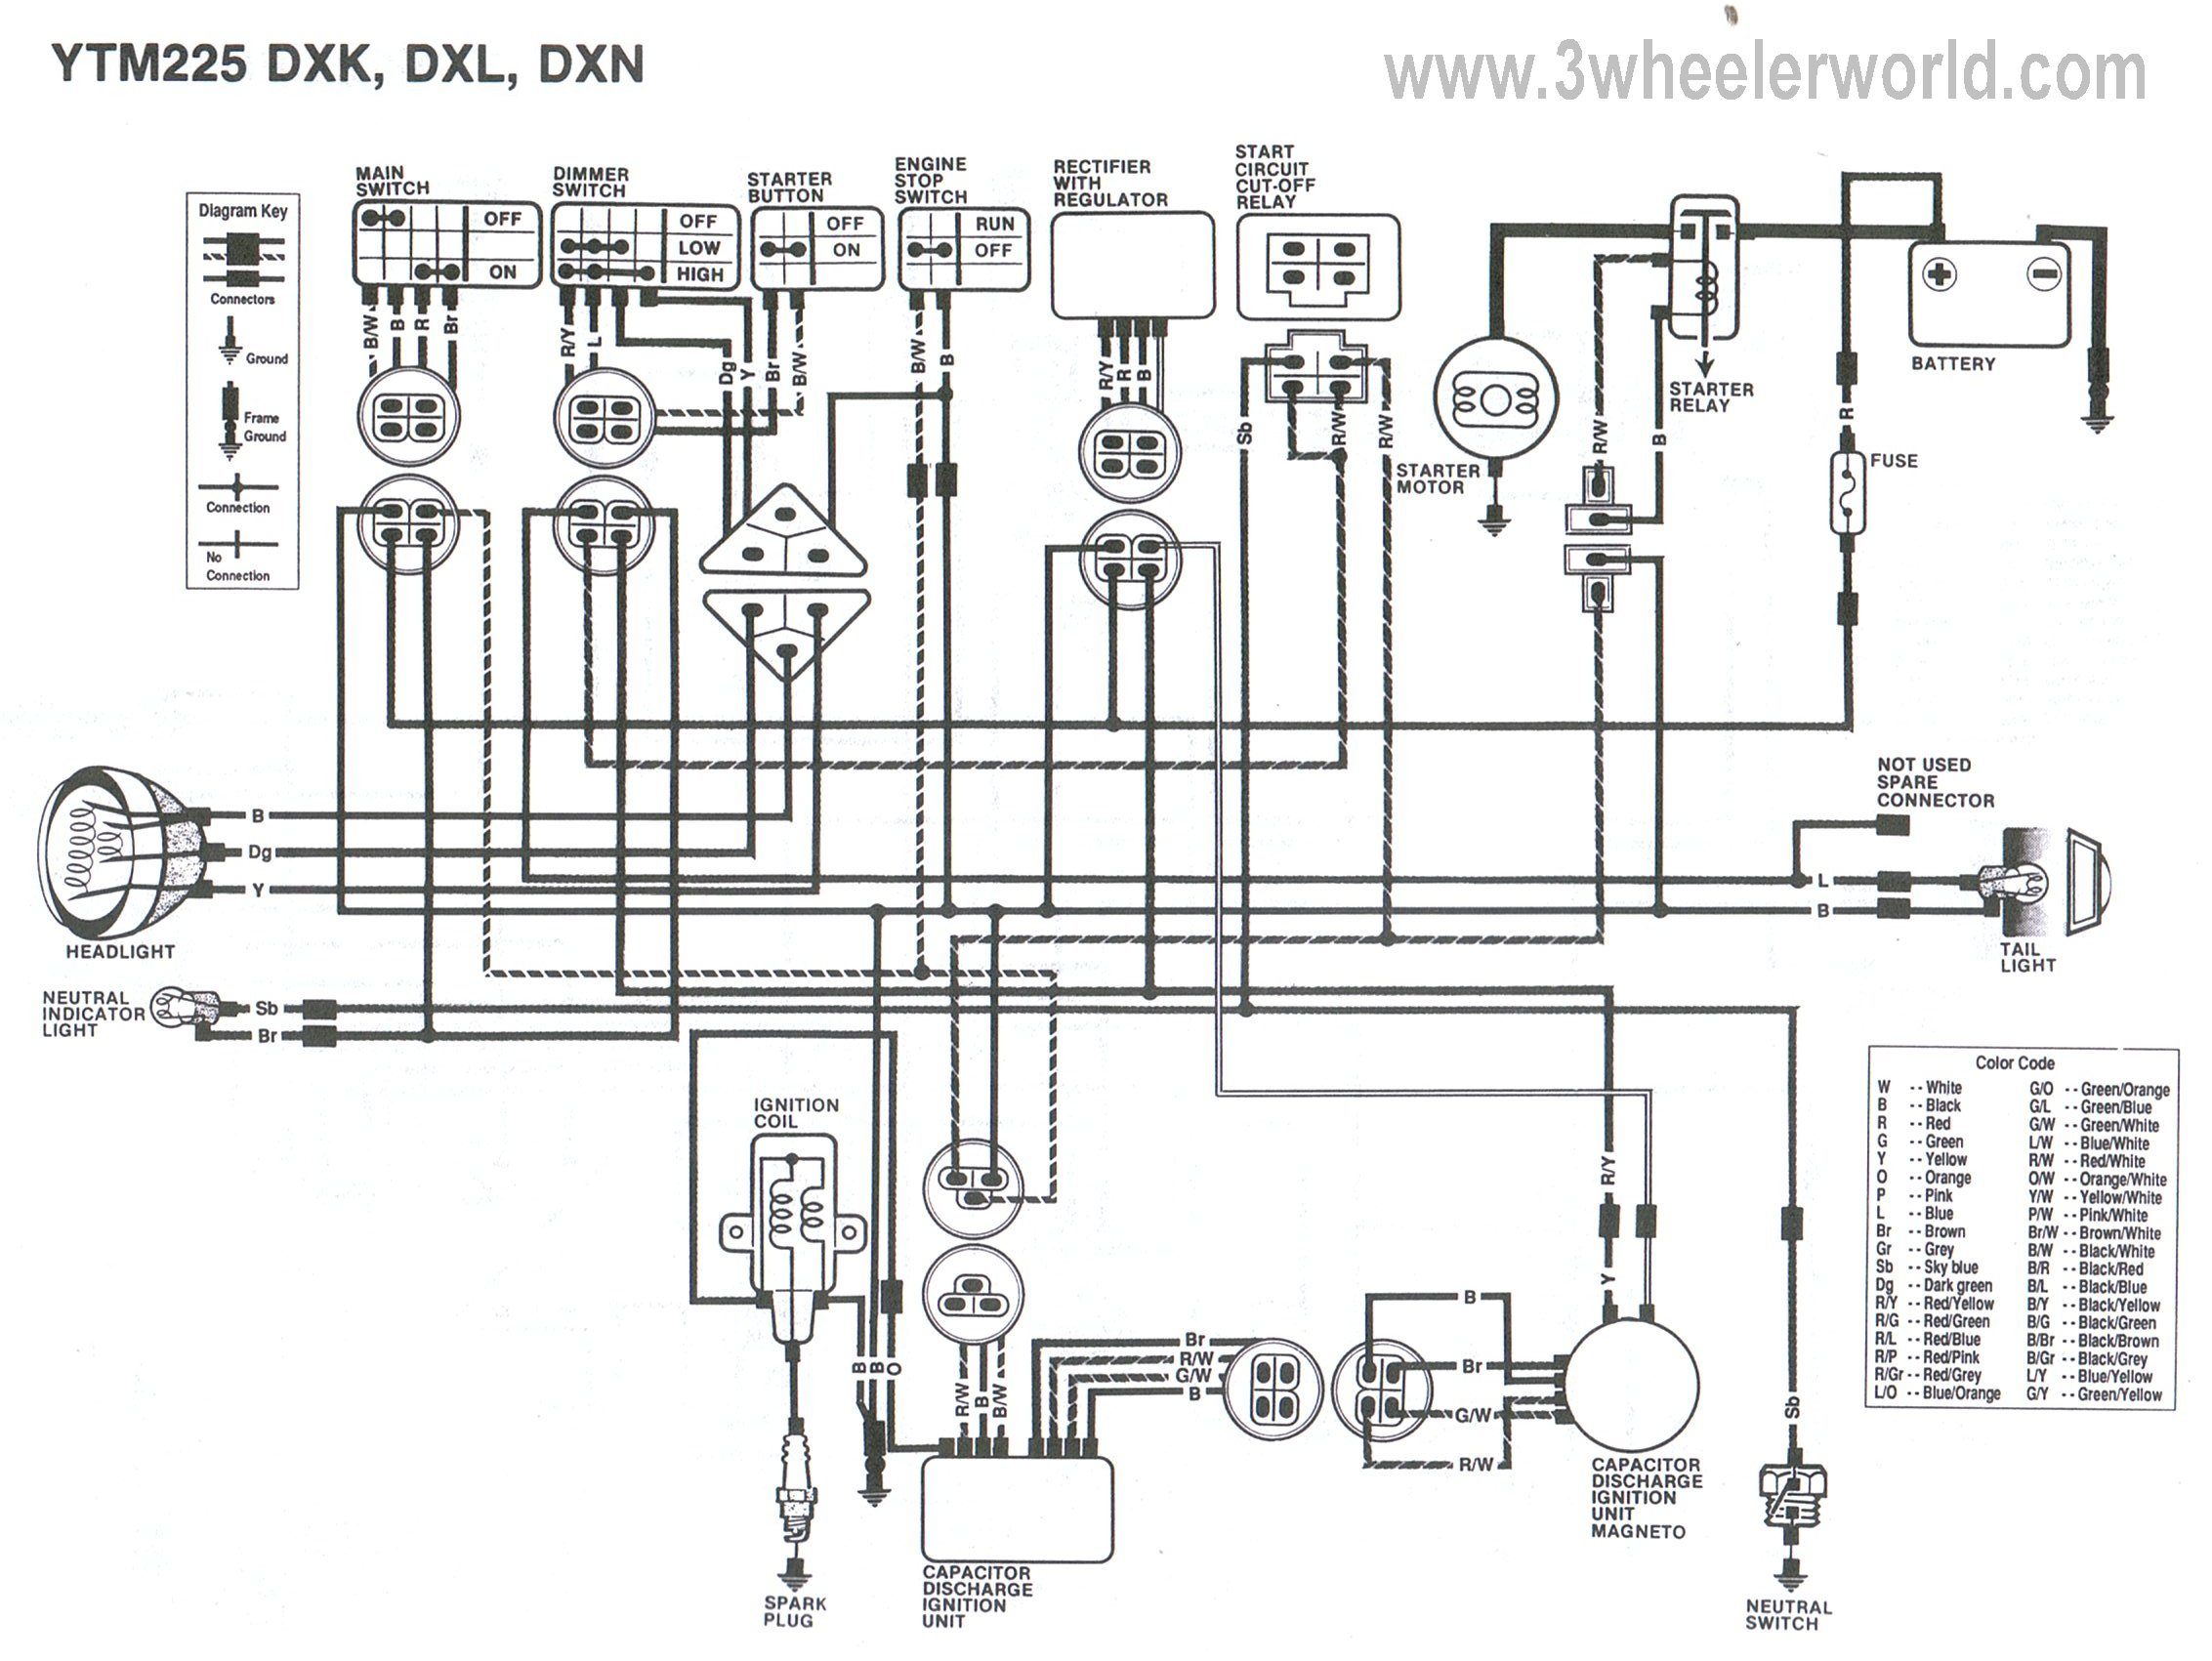 1996 Force Outboard Engine Diagram Schematics Wiring Diagrams Images Gallery